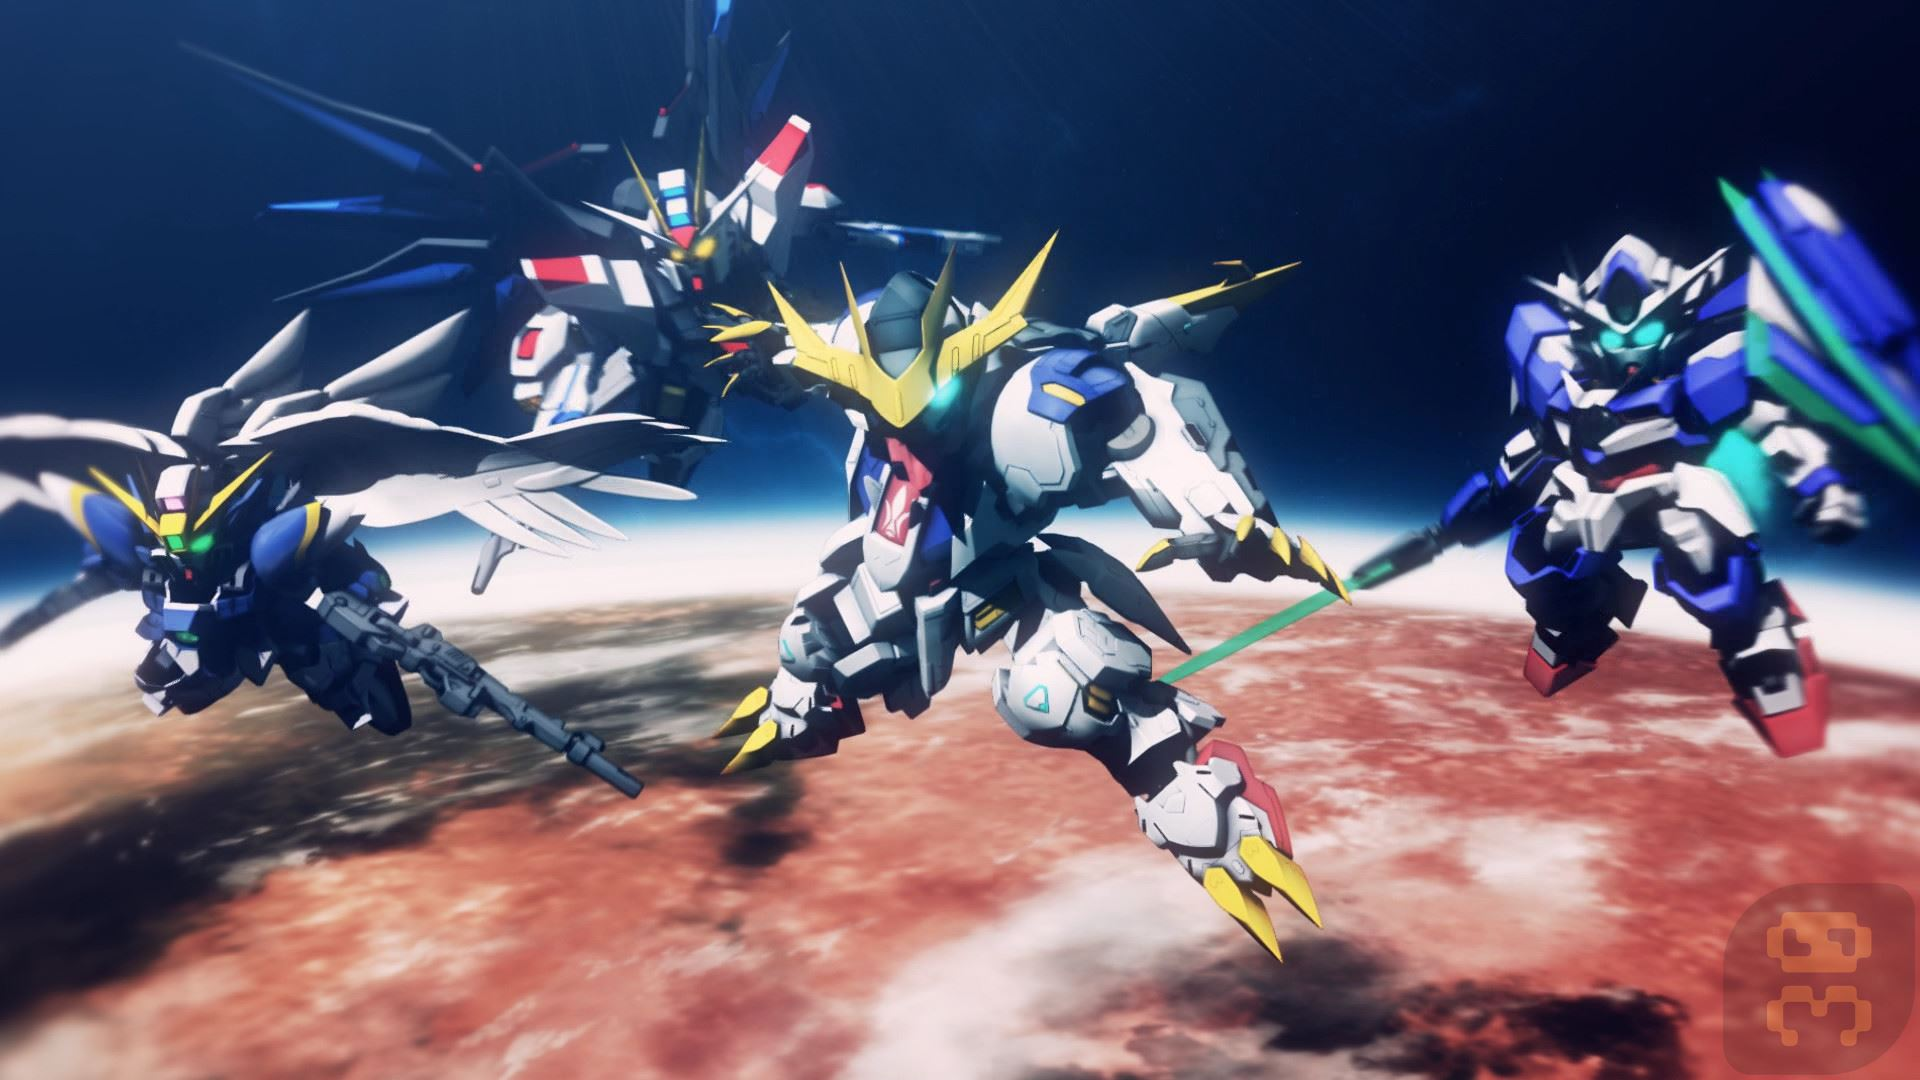 SD GUNDAM G GENERATION CROSS RAYS Game For PC